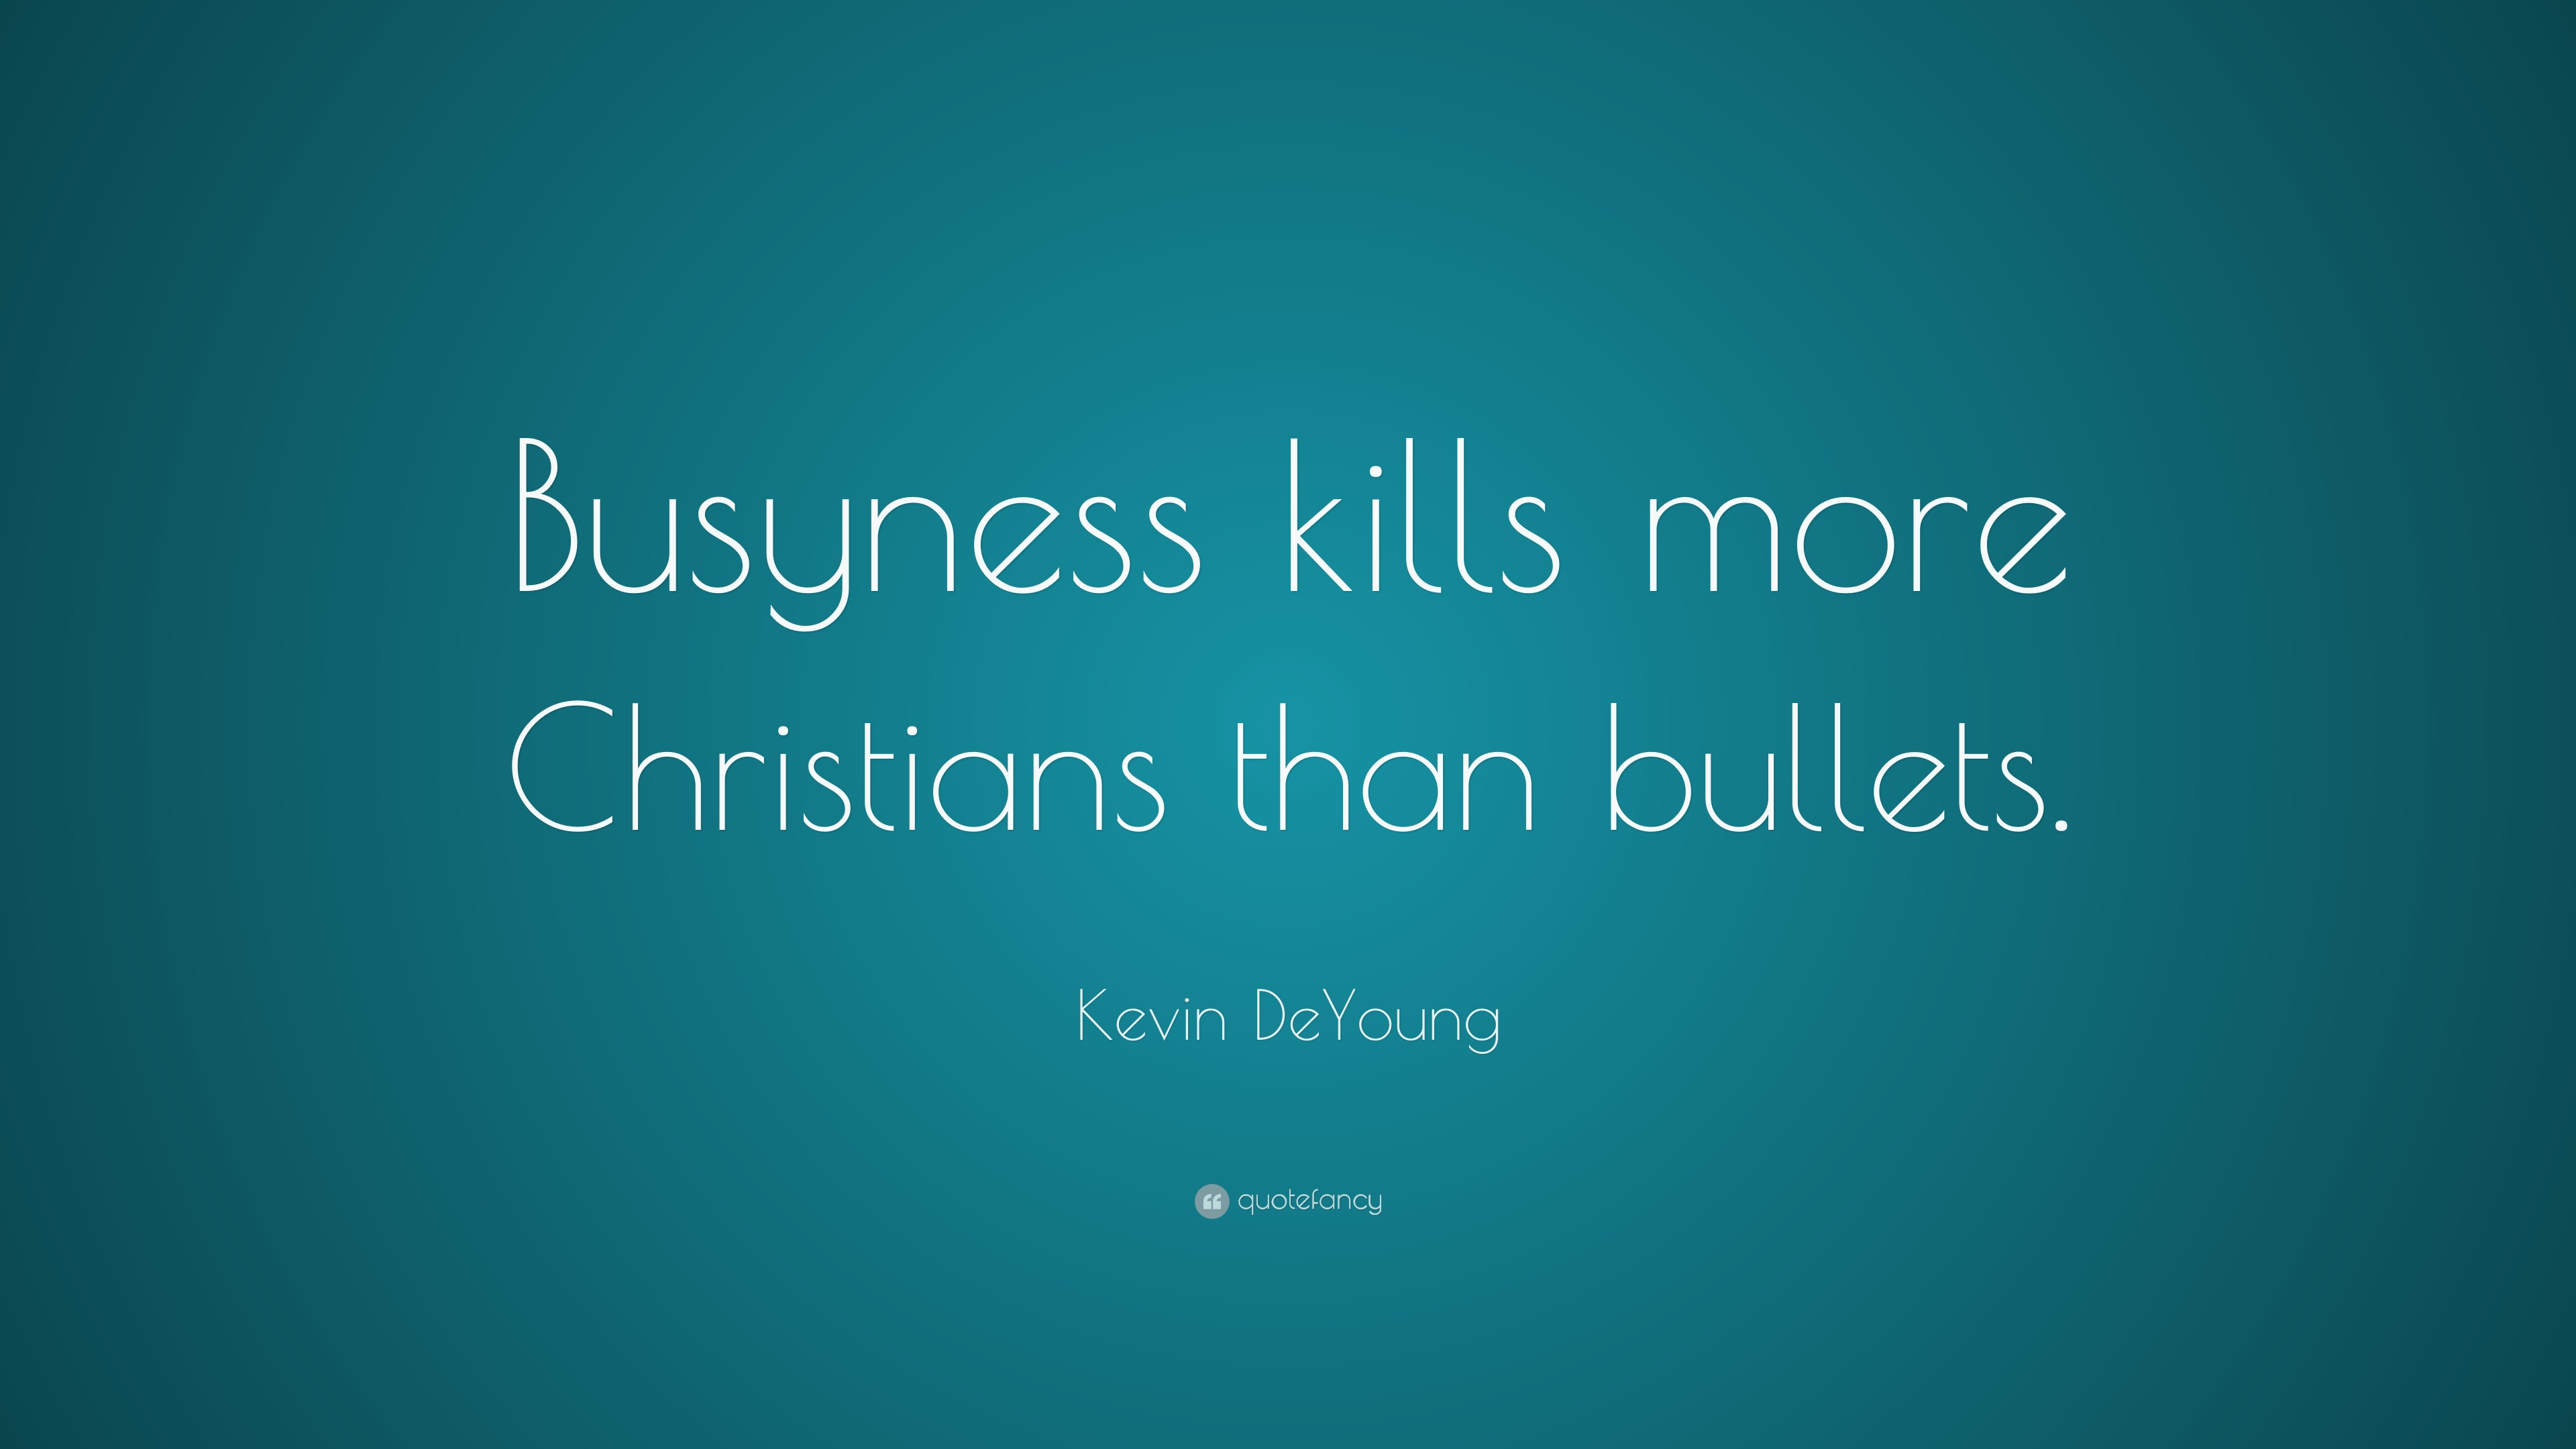 kevin deyoung quote busyness kills more christians than bullets